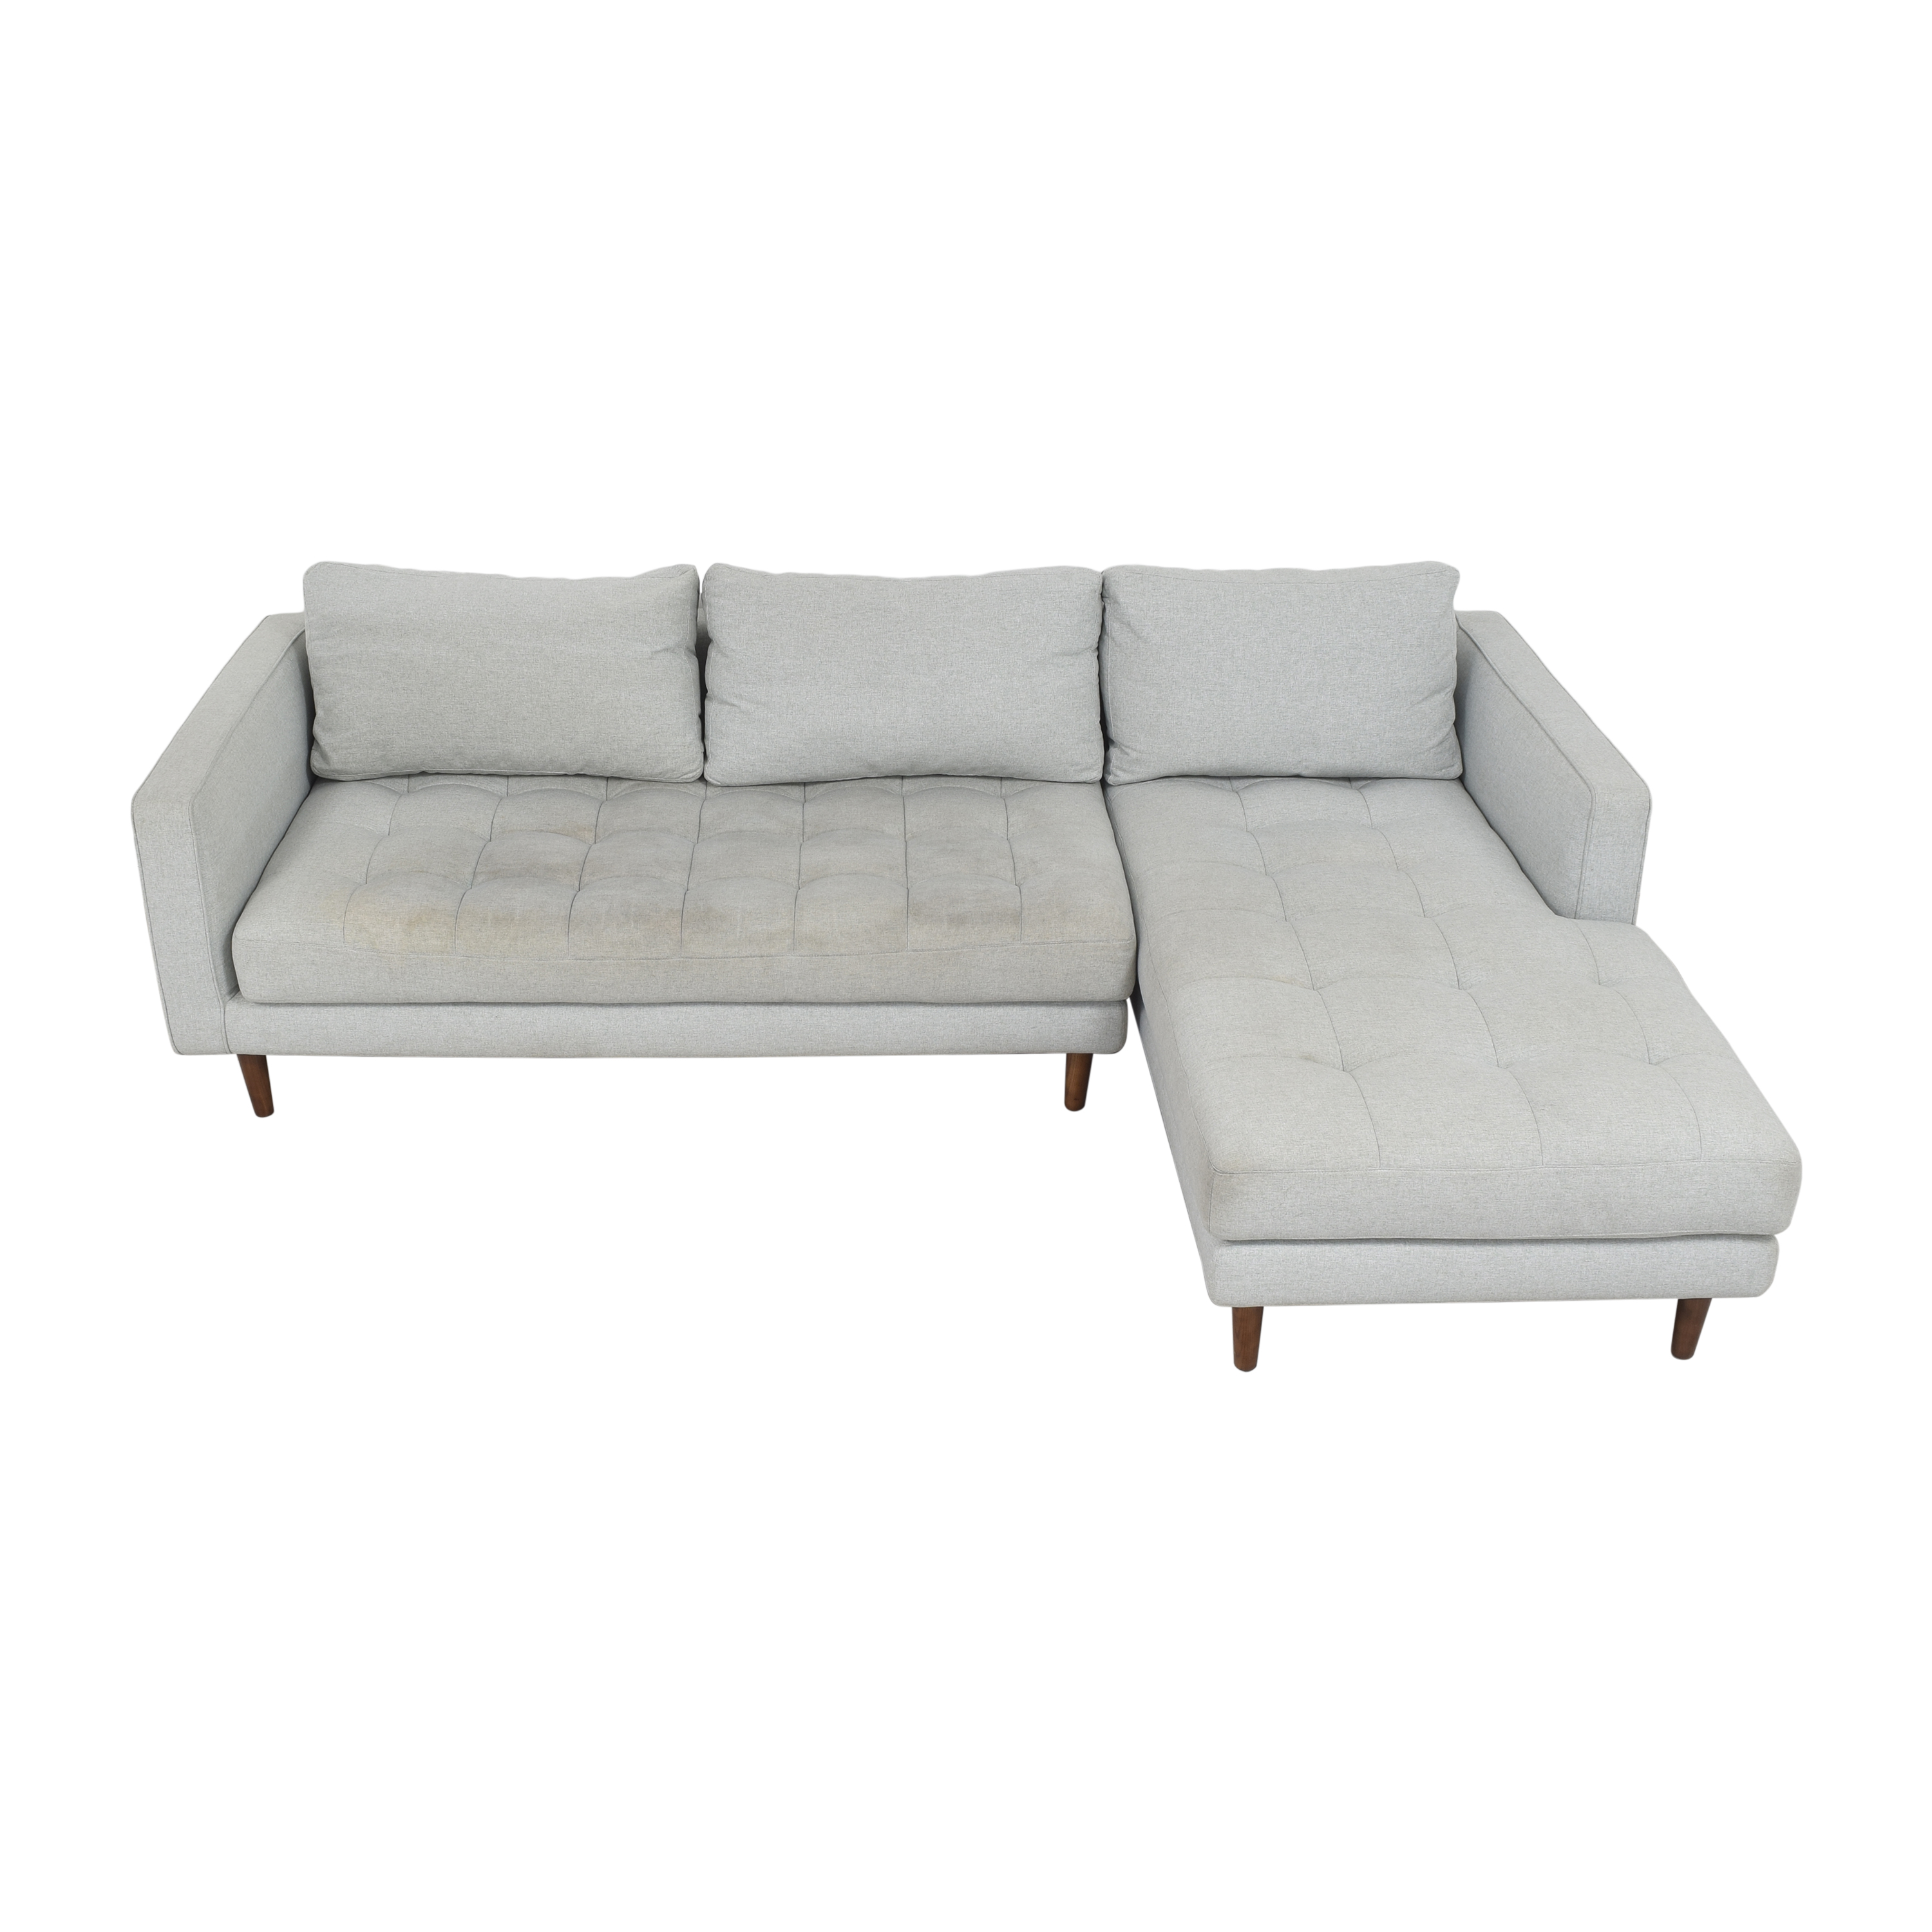 Rove Concepts Rove Concepts Luca Sectional Sofa with Chaise light gray